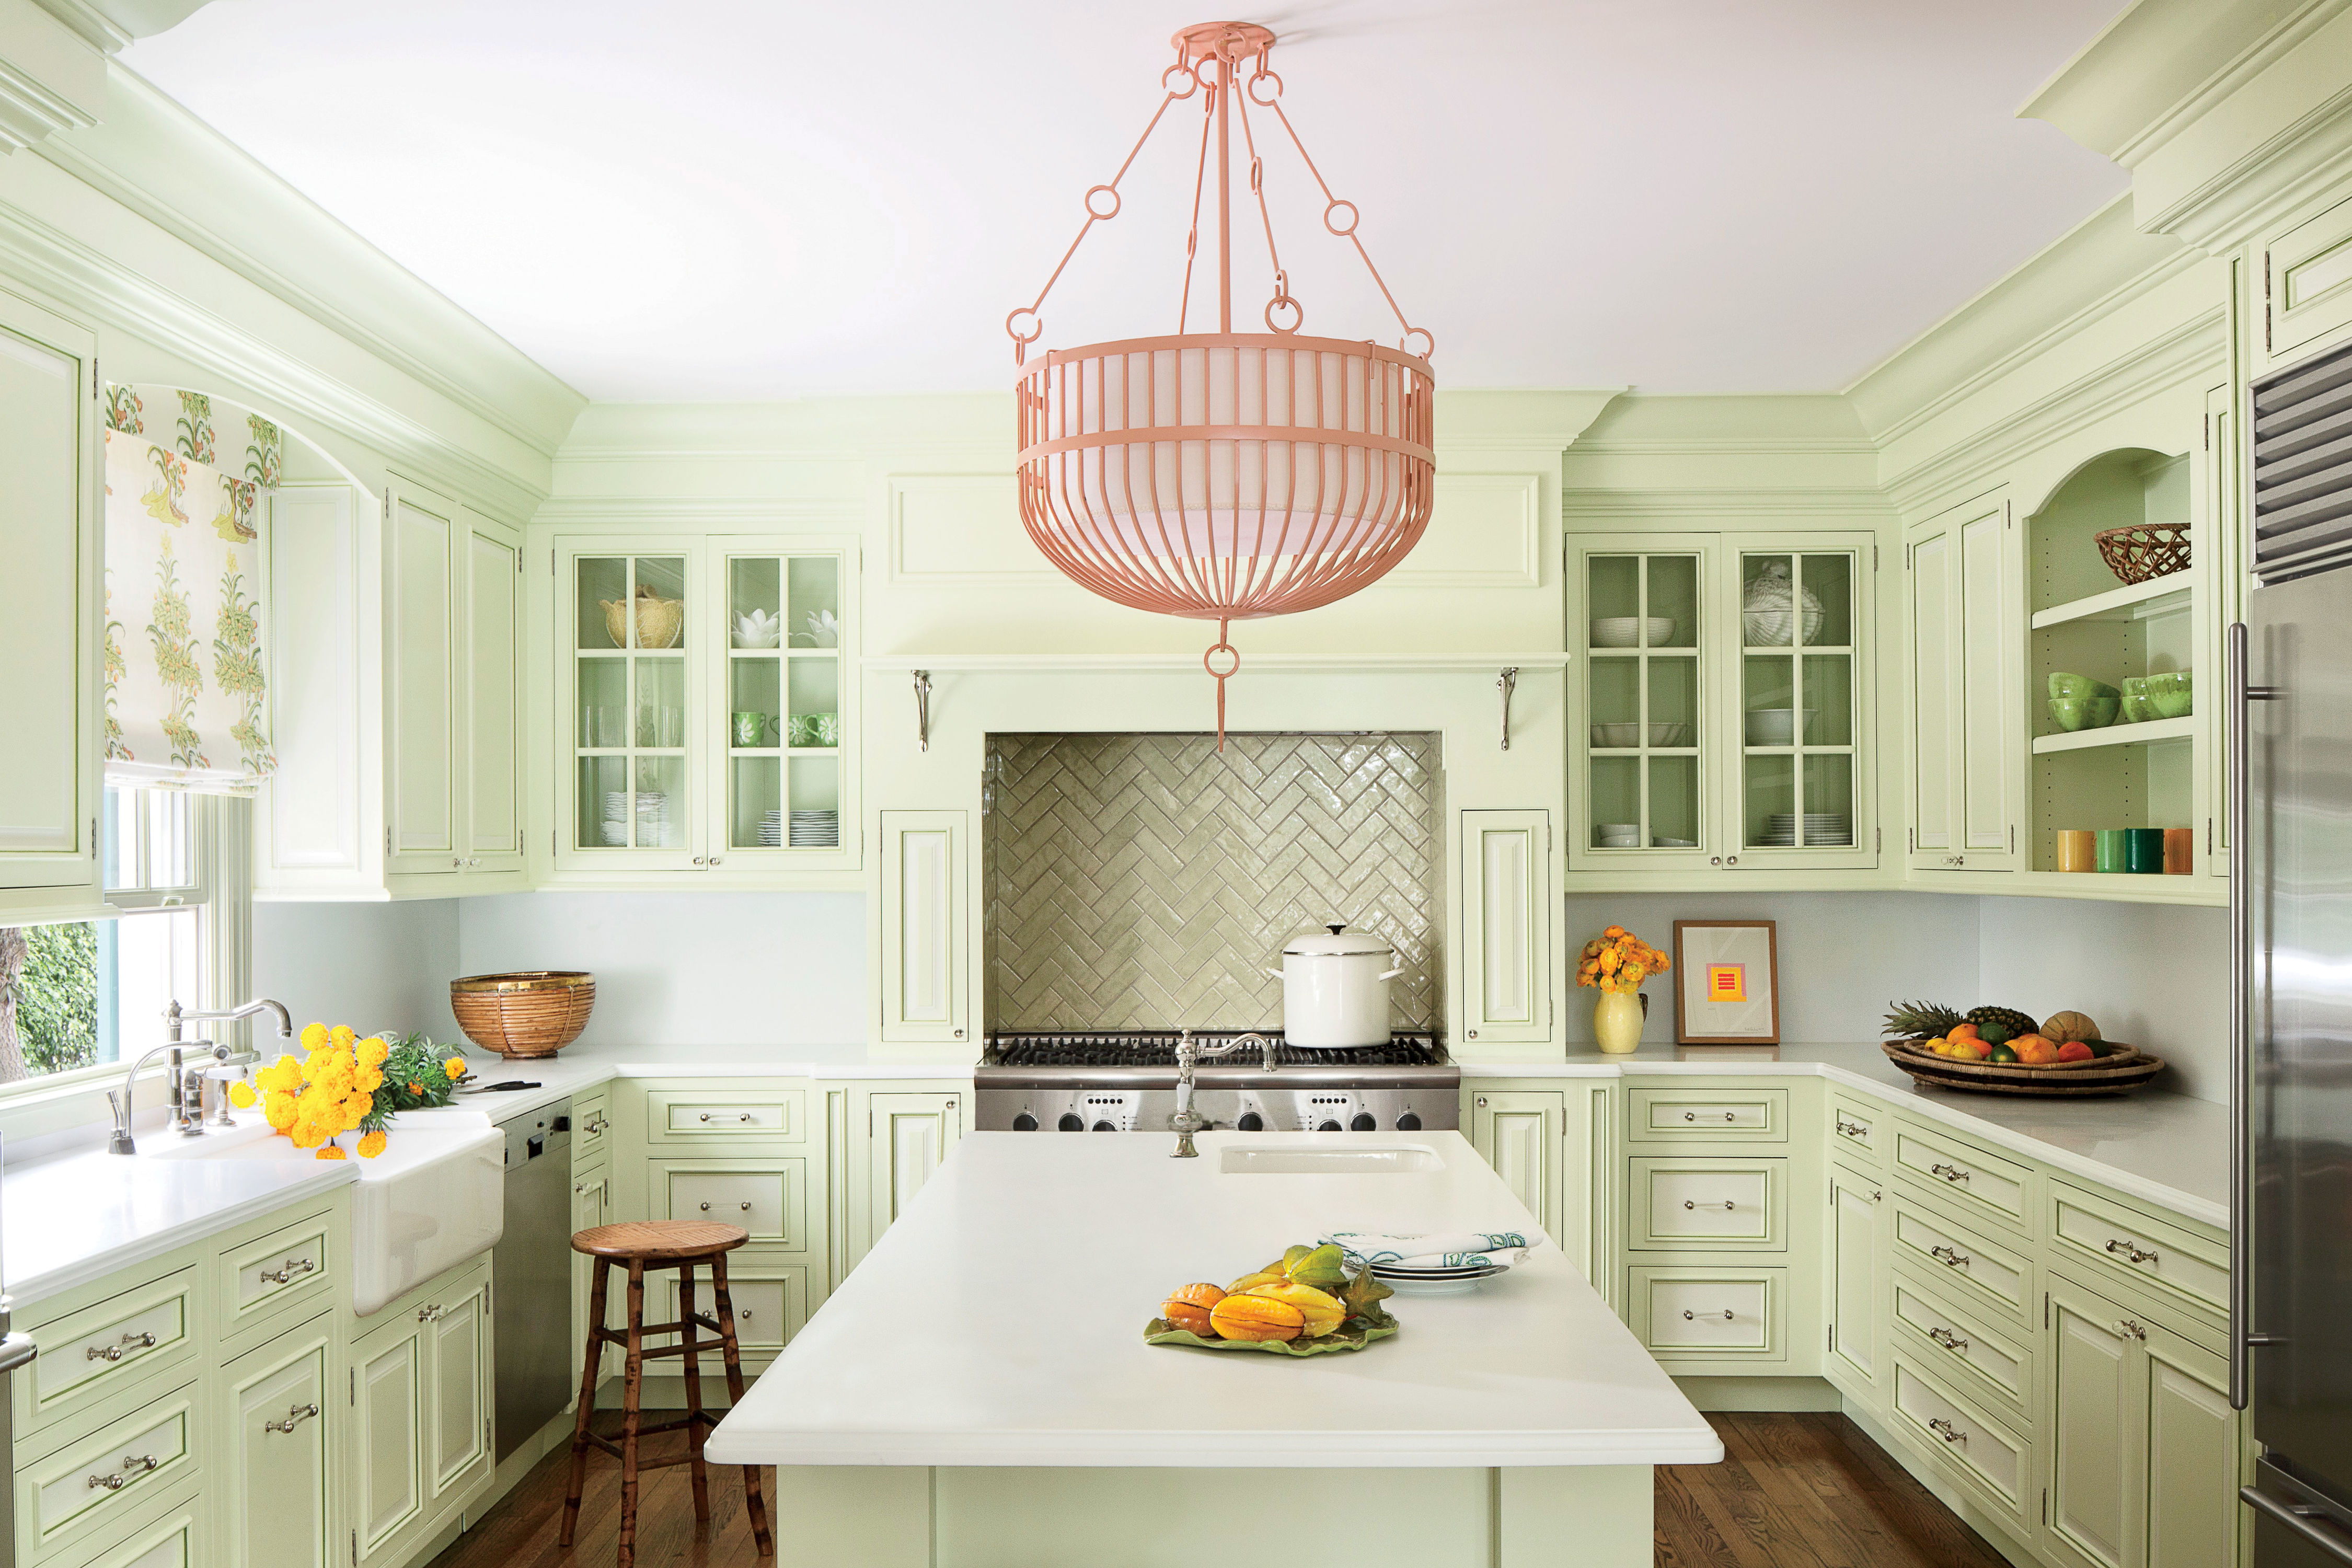 A Colorful Kitchen Trend That's Making a Comeback